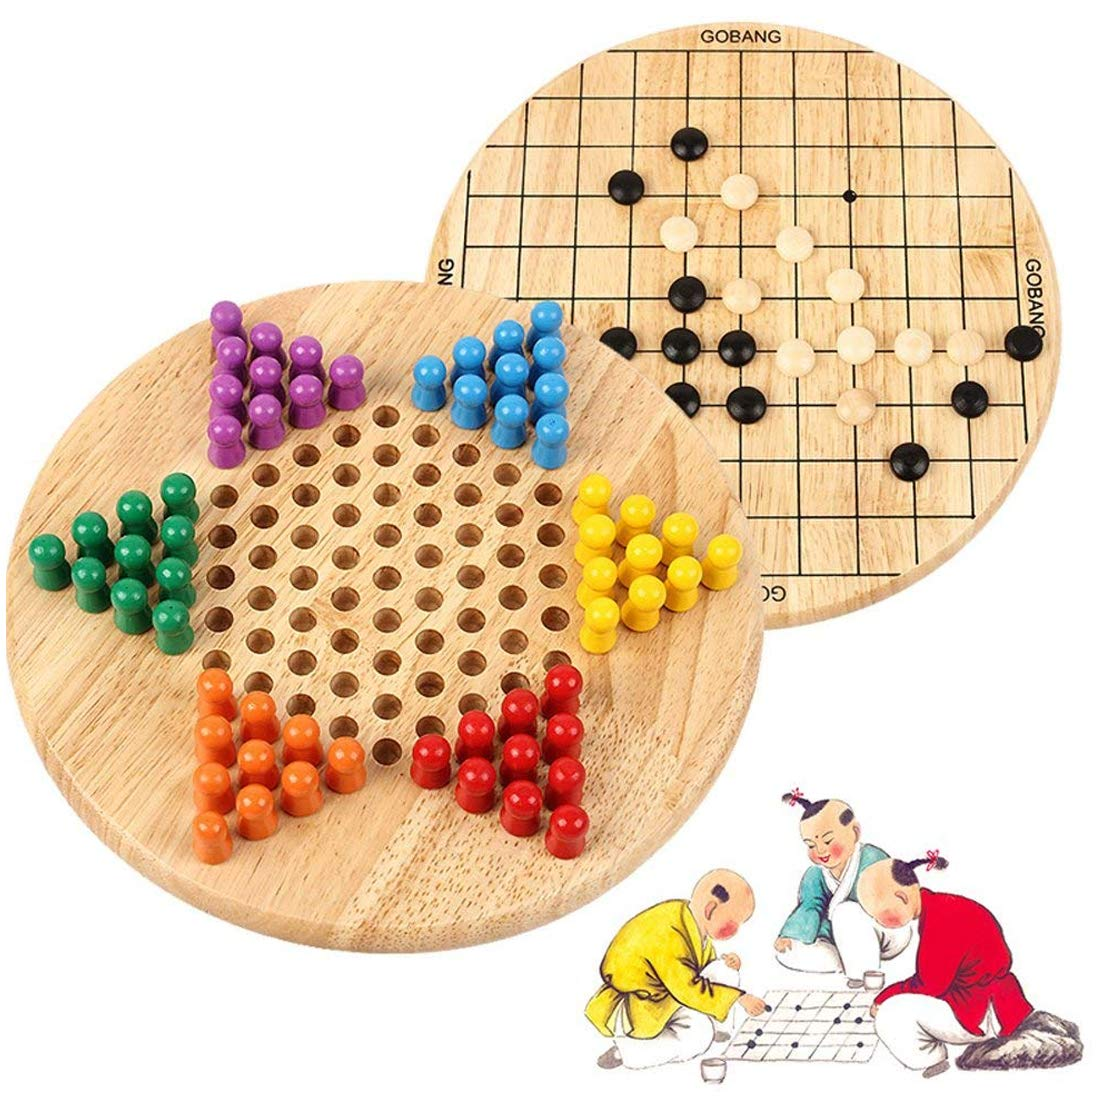 Wondertoys 2 in 1 Chinese Checkers & Gobang (Five in a Row) Wooden Board Game for Family by Wondertoys